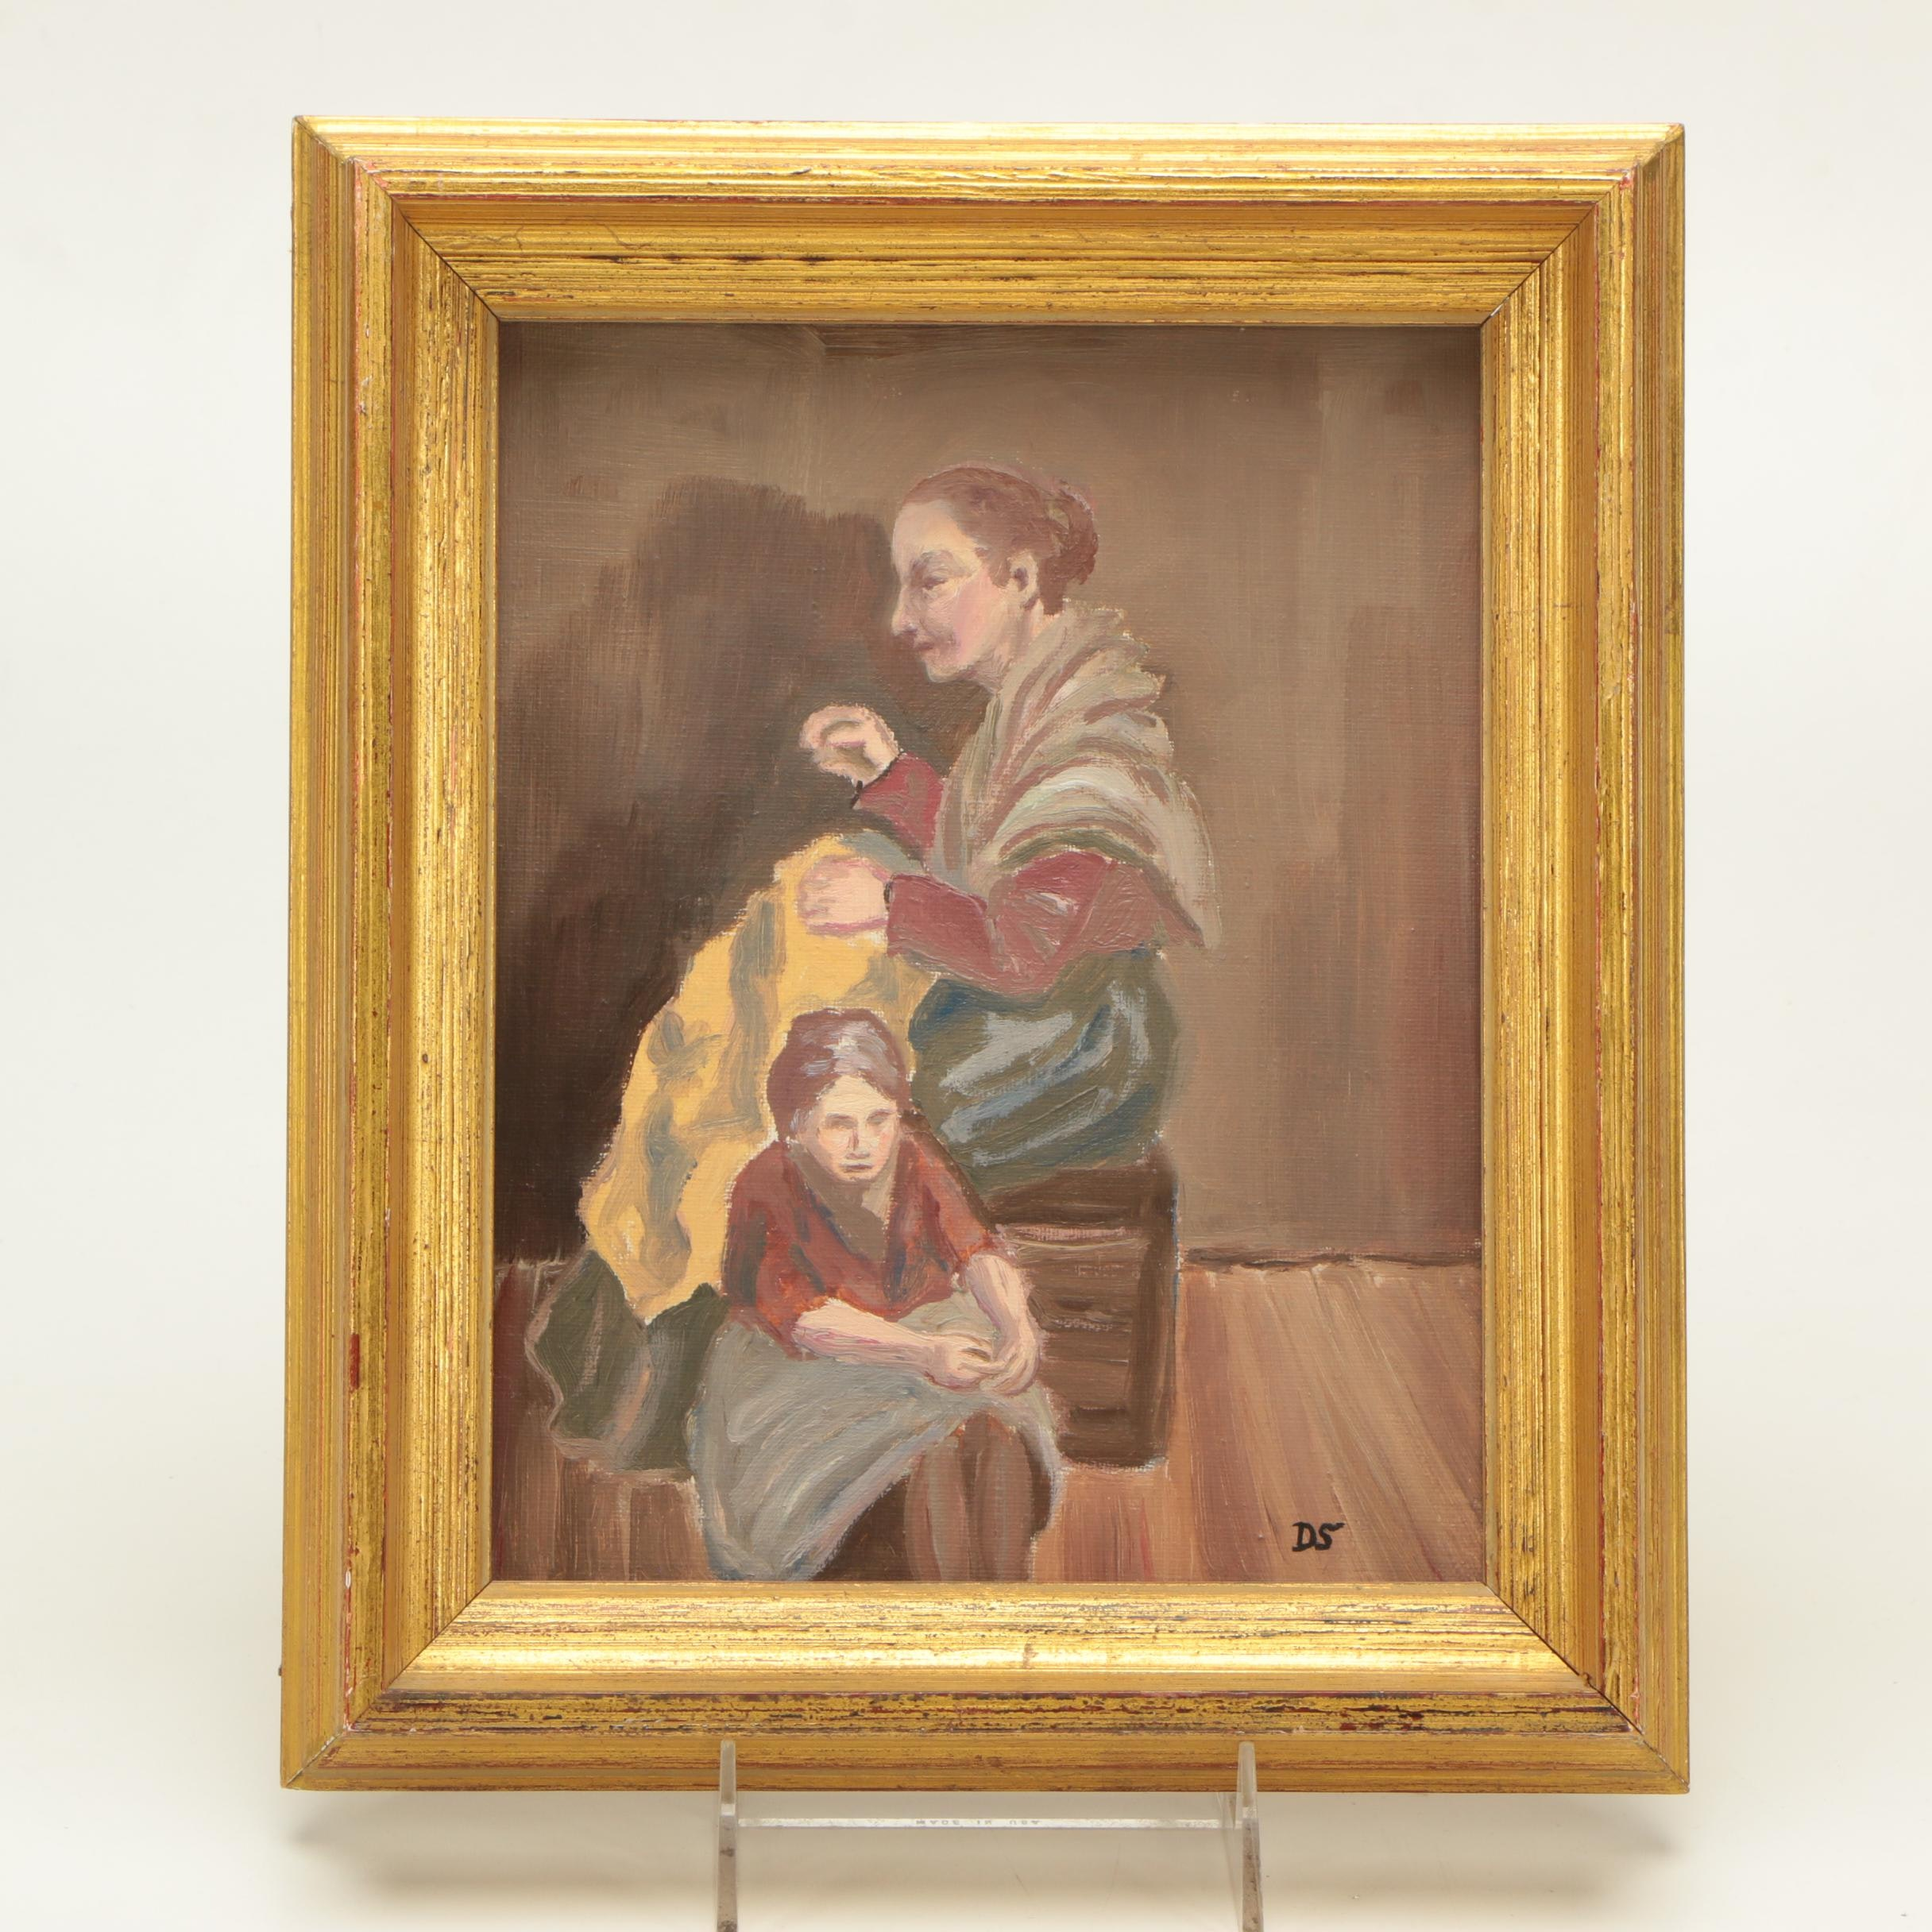 Oil on Canvas Painting of Two Women Sewing